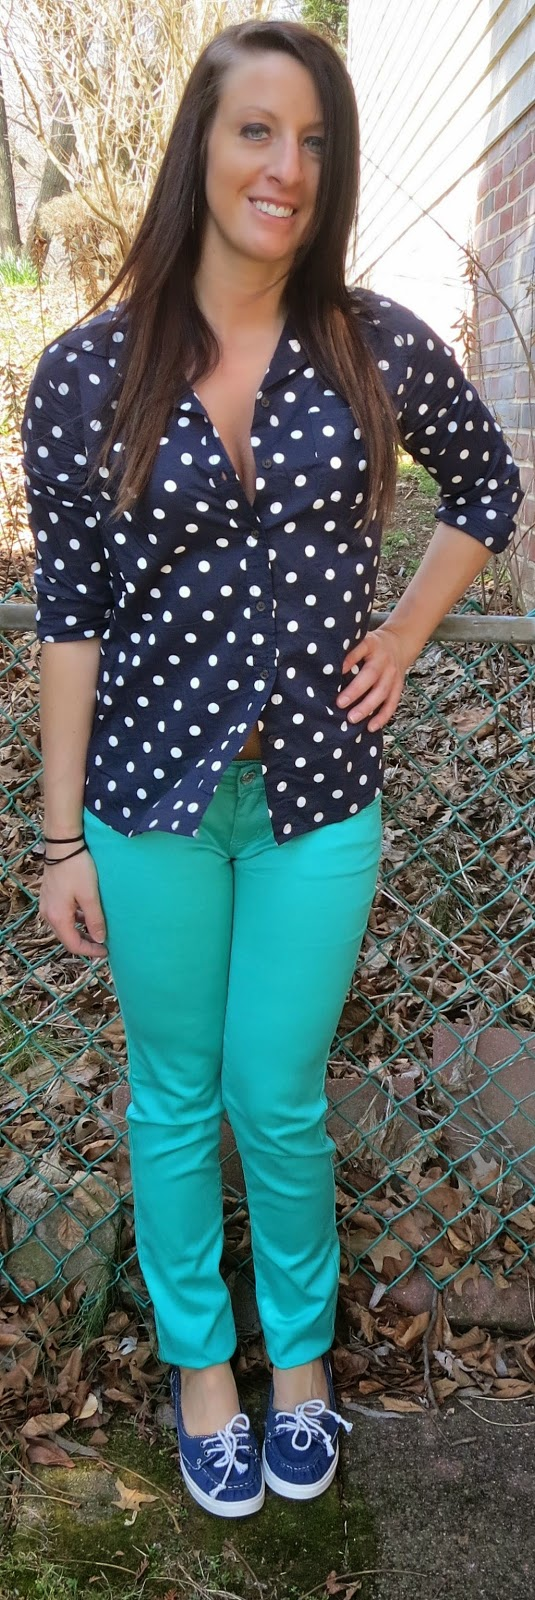 polka dot blouse, mint pants, target, fashion, outfit